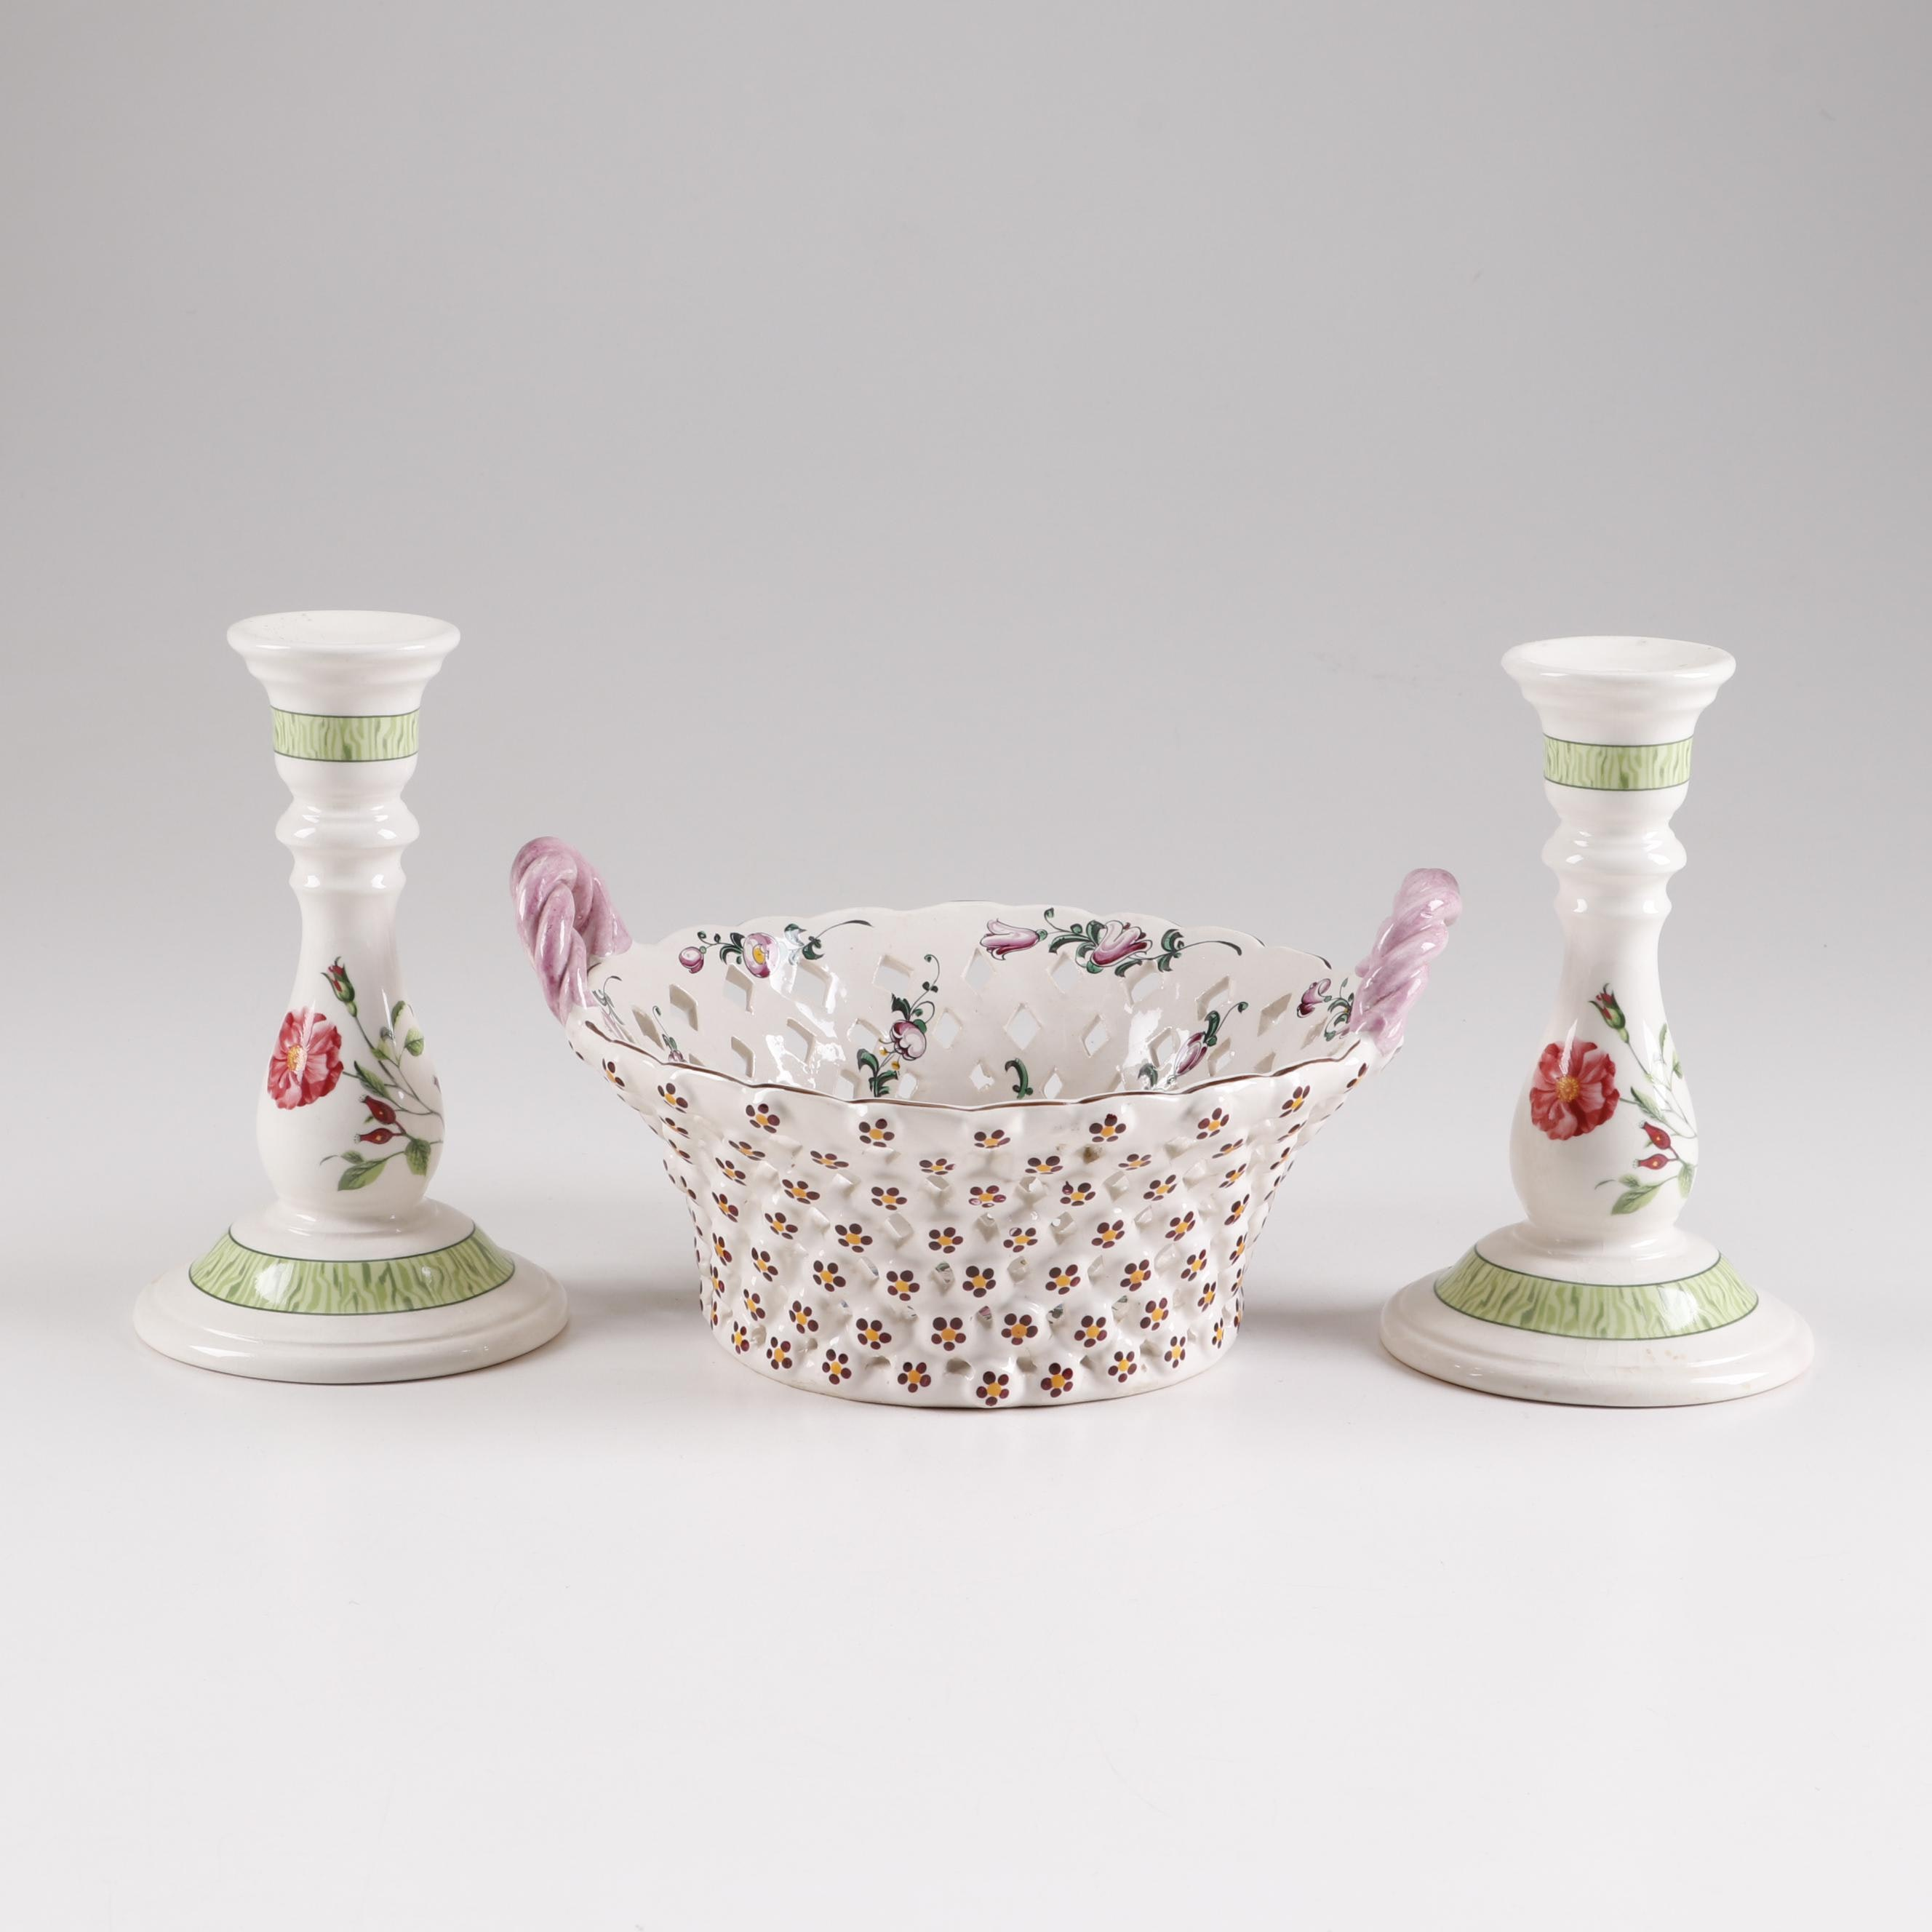 Tiffany & Co. Hand-Painted French Porcelain Reticulated Bowl and Candlesticks